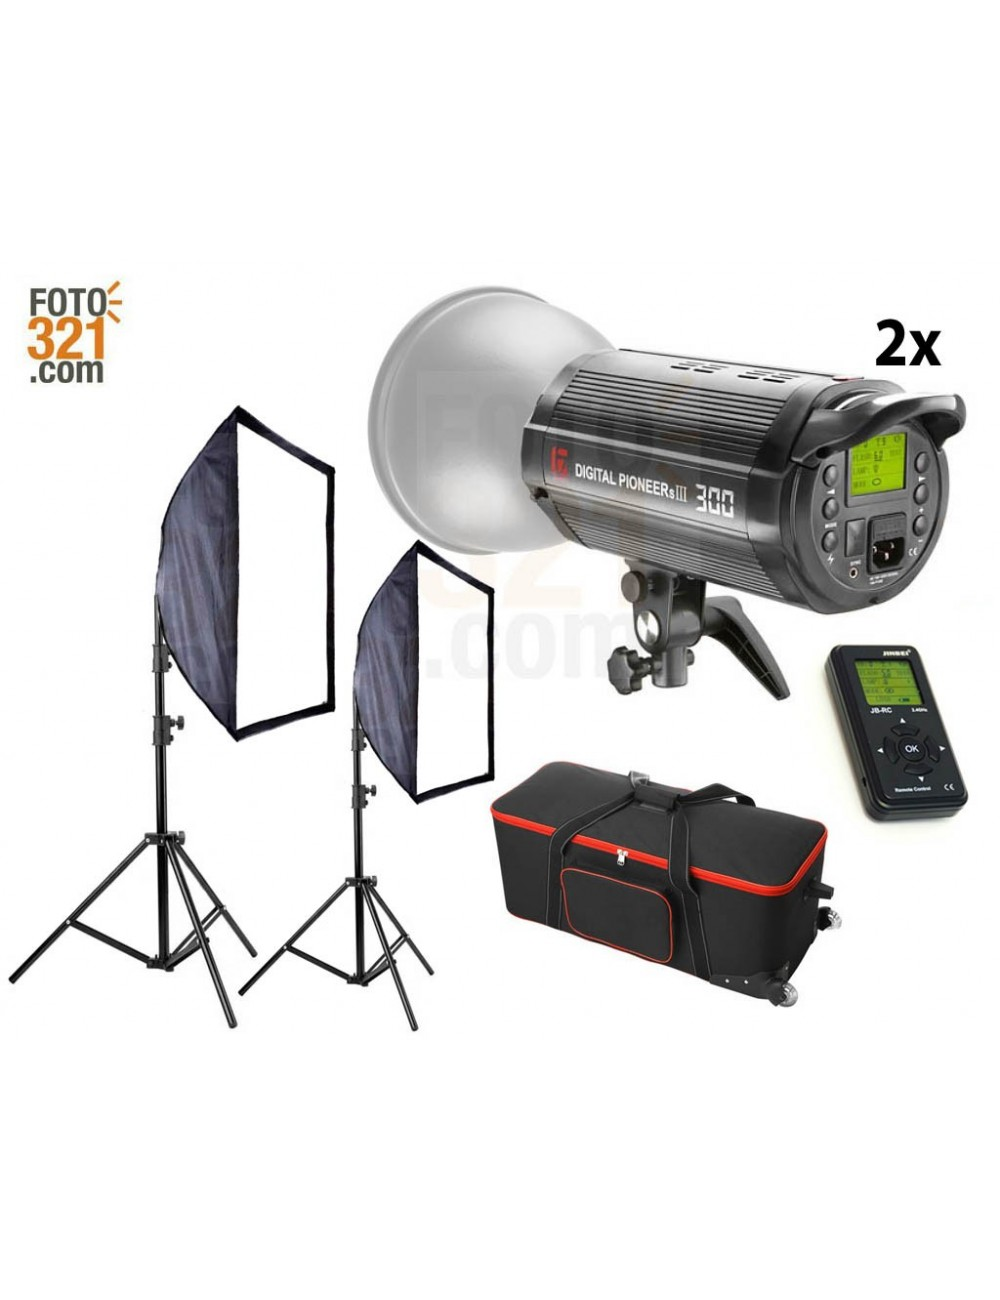 Kit 2B Flashes de estudio DPsIII 300 con maleta